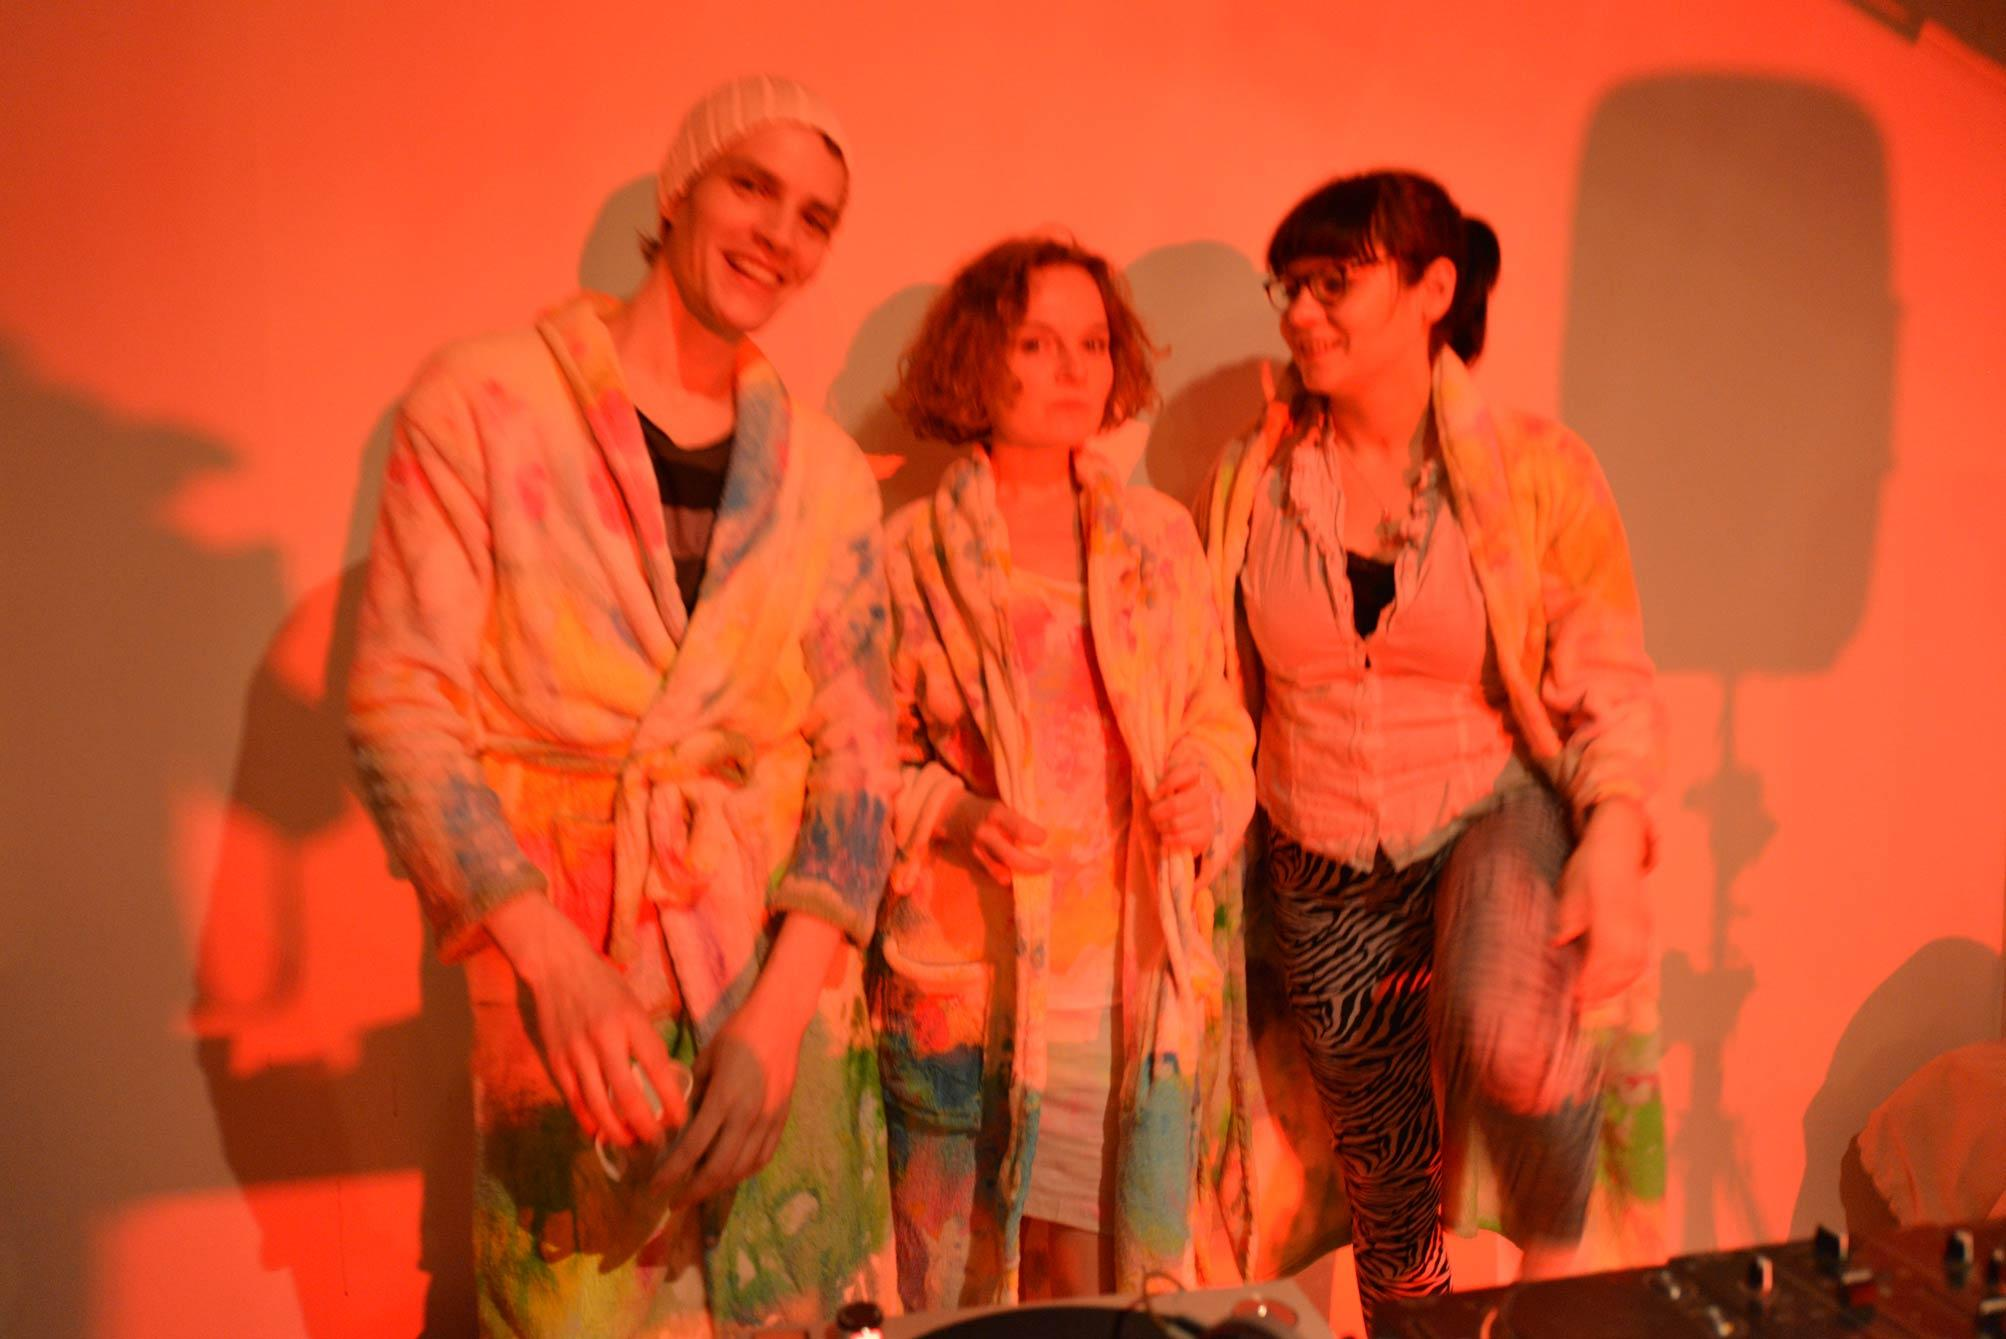 Limited edition of sauna sessions with paintings as towels and robes/ robes and towels as paintings in SmallProjects Tromso gallery. 2014/ Along with DJ Charlotte Bendiks+ DJ Christian Bruun